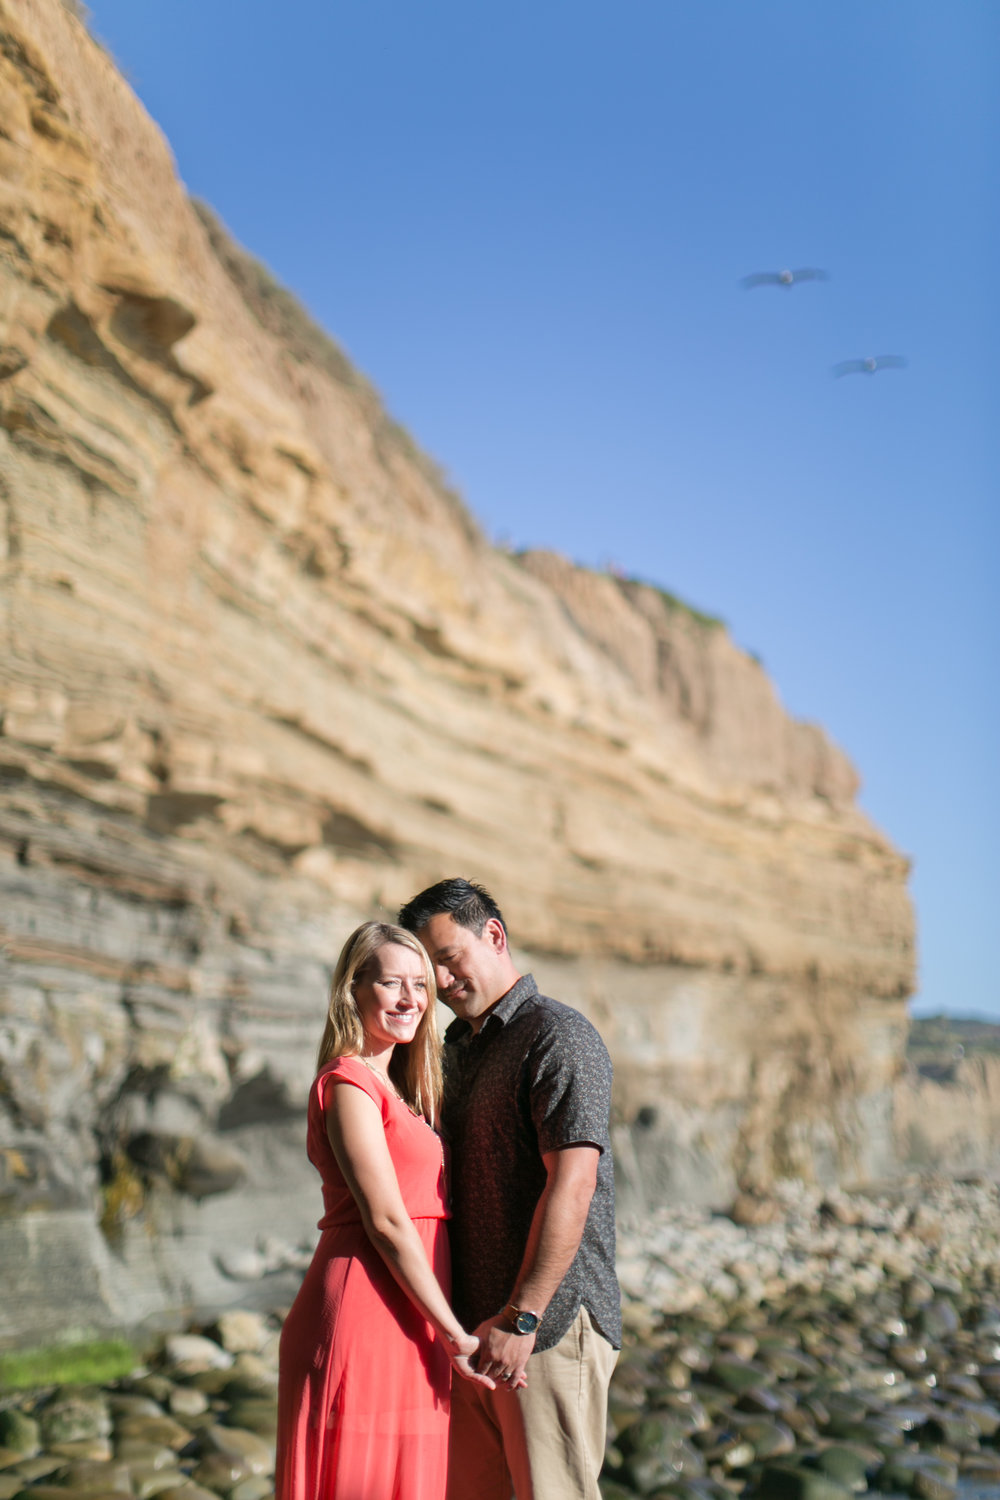 sunset_cliffs_photographer24.jpg